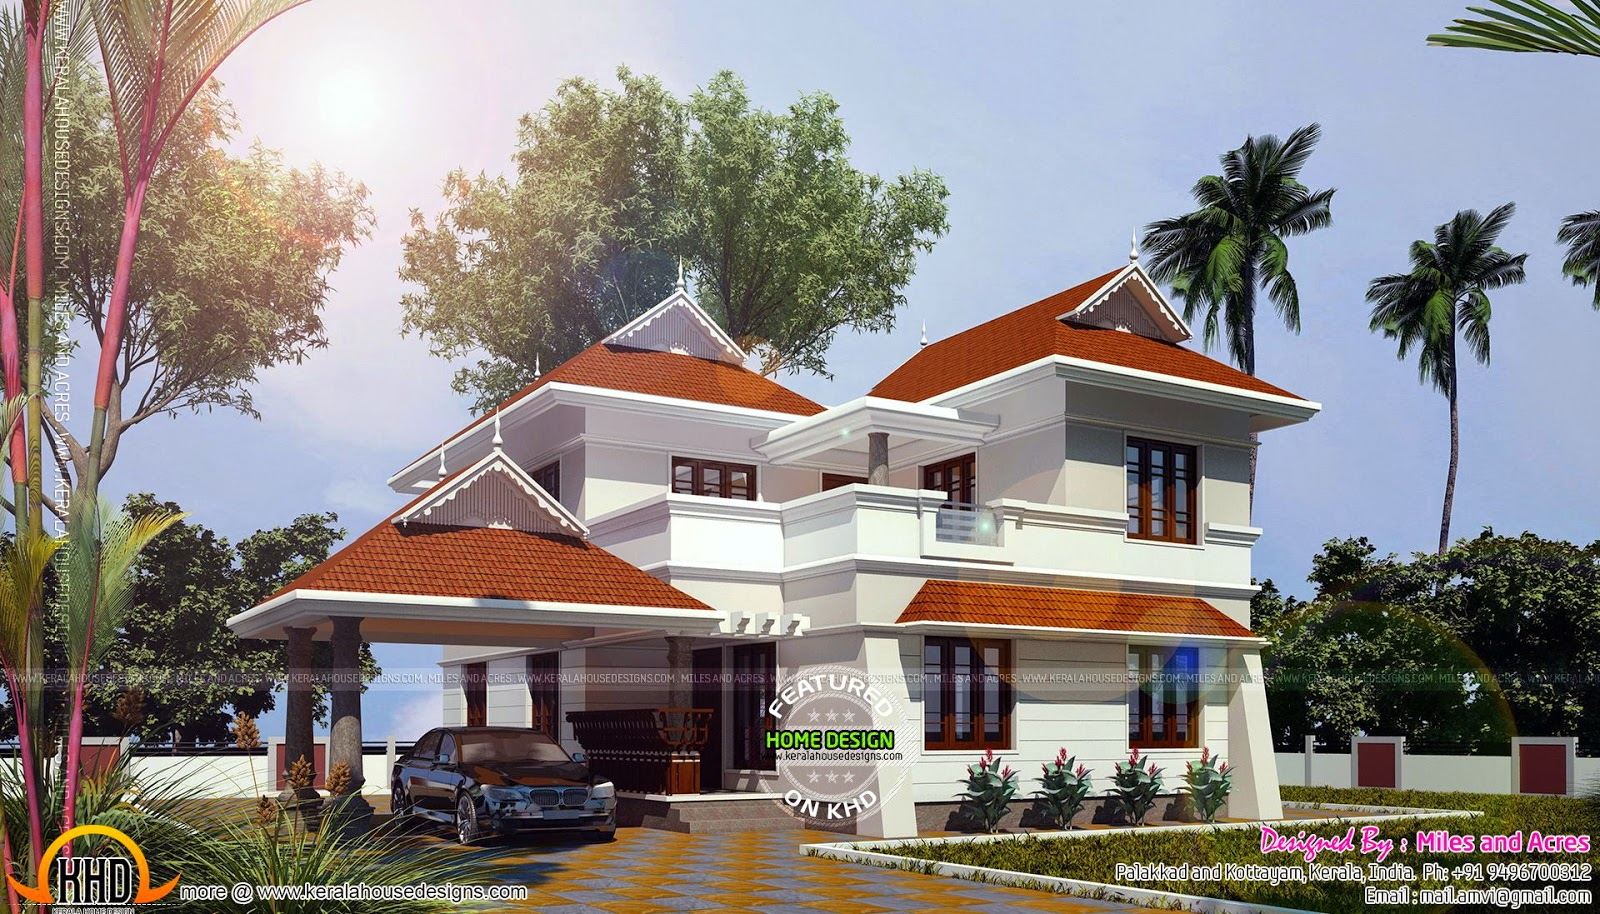 1767 square feet house plan kerala home design and floor for North indian house plans with photos